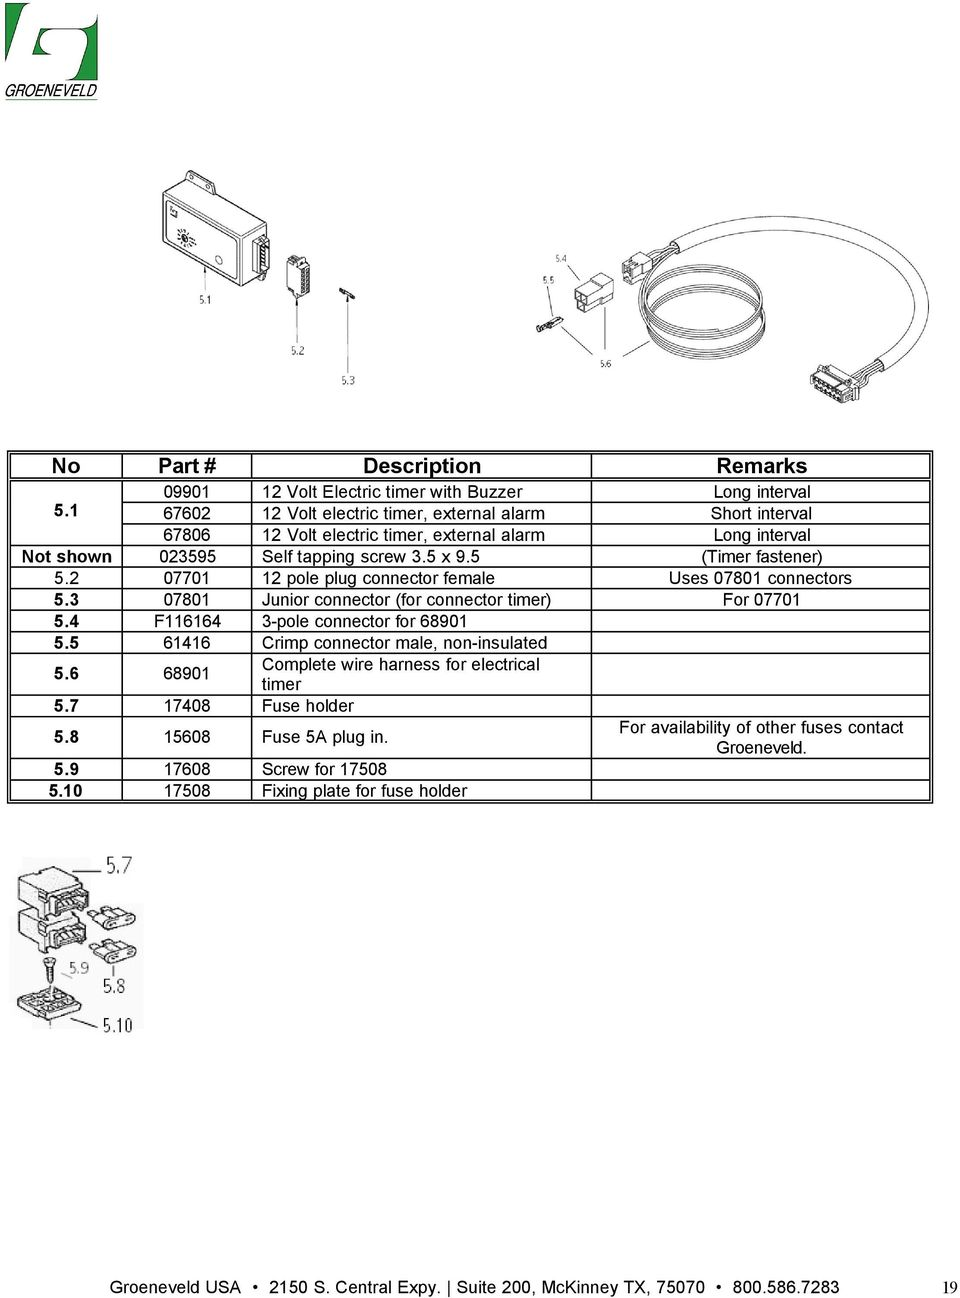 Automated Lubrication Systems Parts Accessories Pdf Sbd Motorsport Suzuki Hayabusa Management Wiring Harnesses 2 07701 12 Pole Plug Connector Female Uses 07801 Connectors 53 Junior For